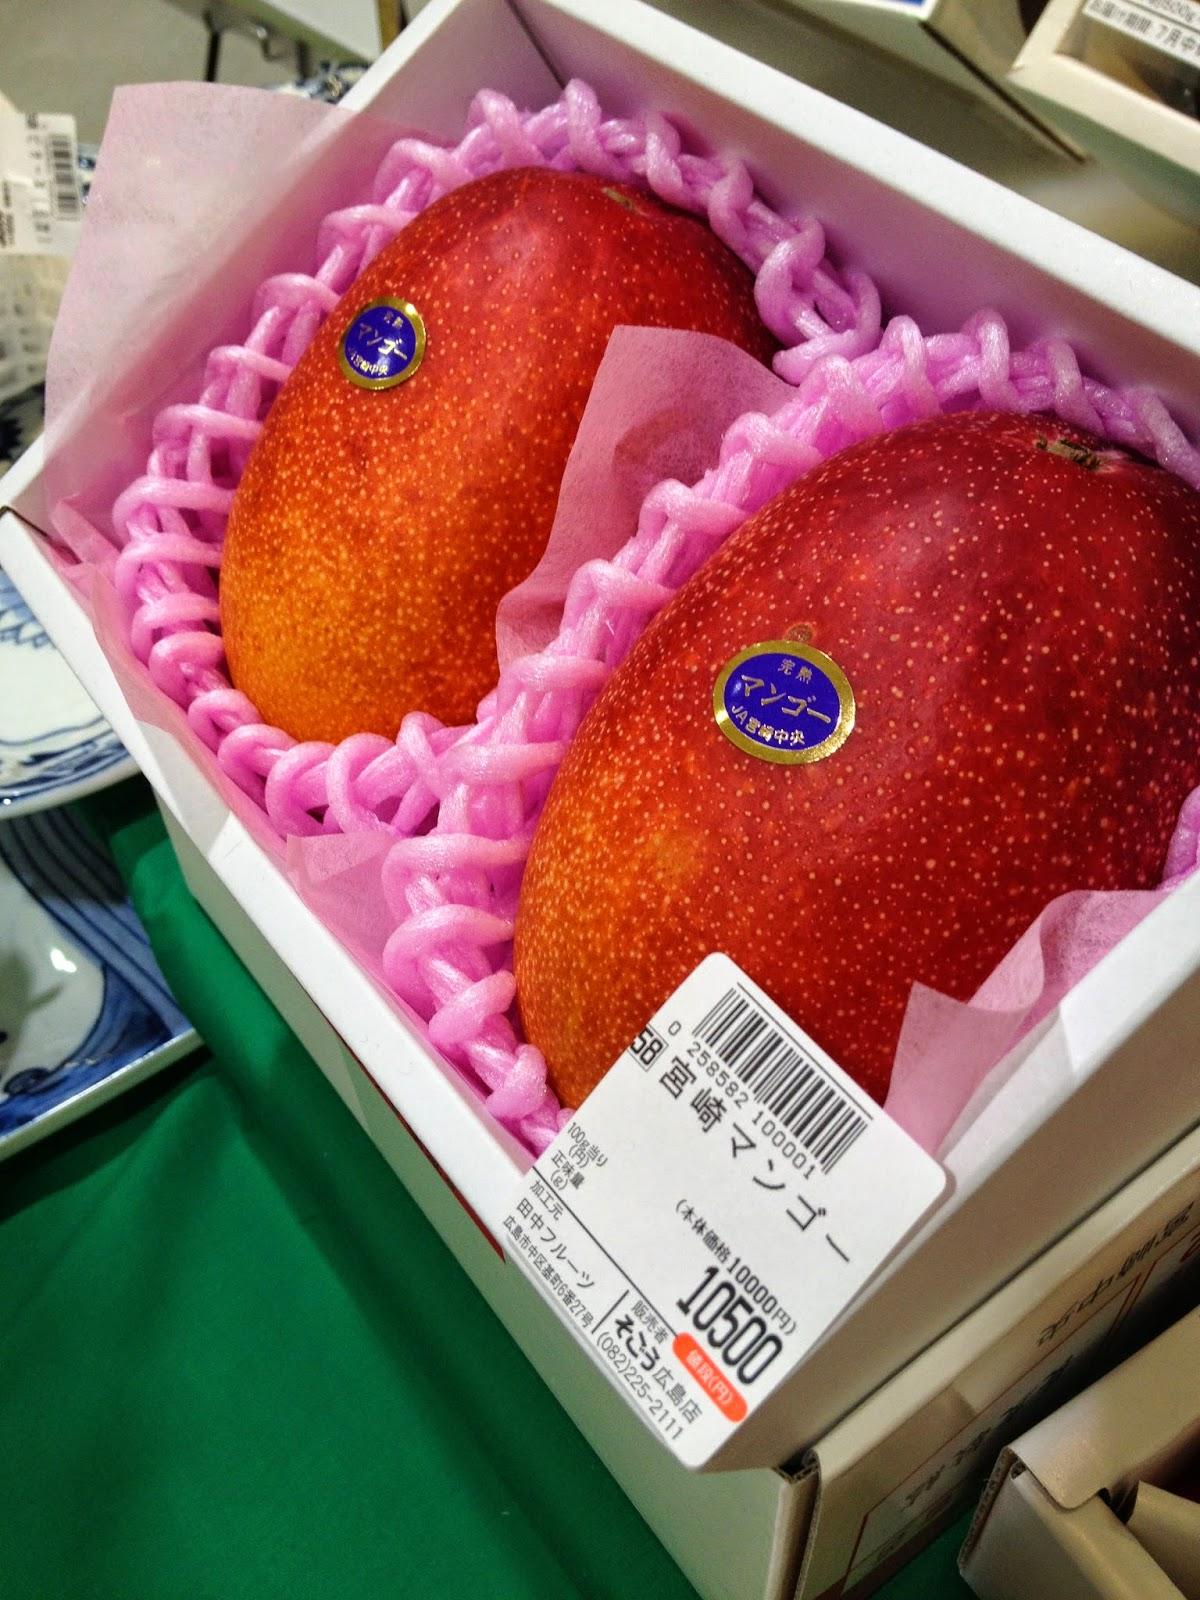 Agriculture, Auction, Business, Economic, Egg of the Sun, Farmer, Fruits, Fukuoka, Japan, Kyushu, Mangoes, Miyazaki Mangoes, Most Expensive Fruits,